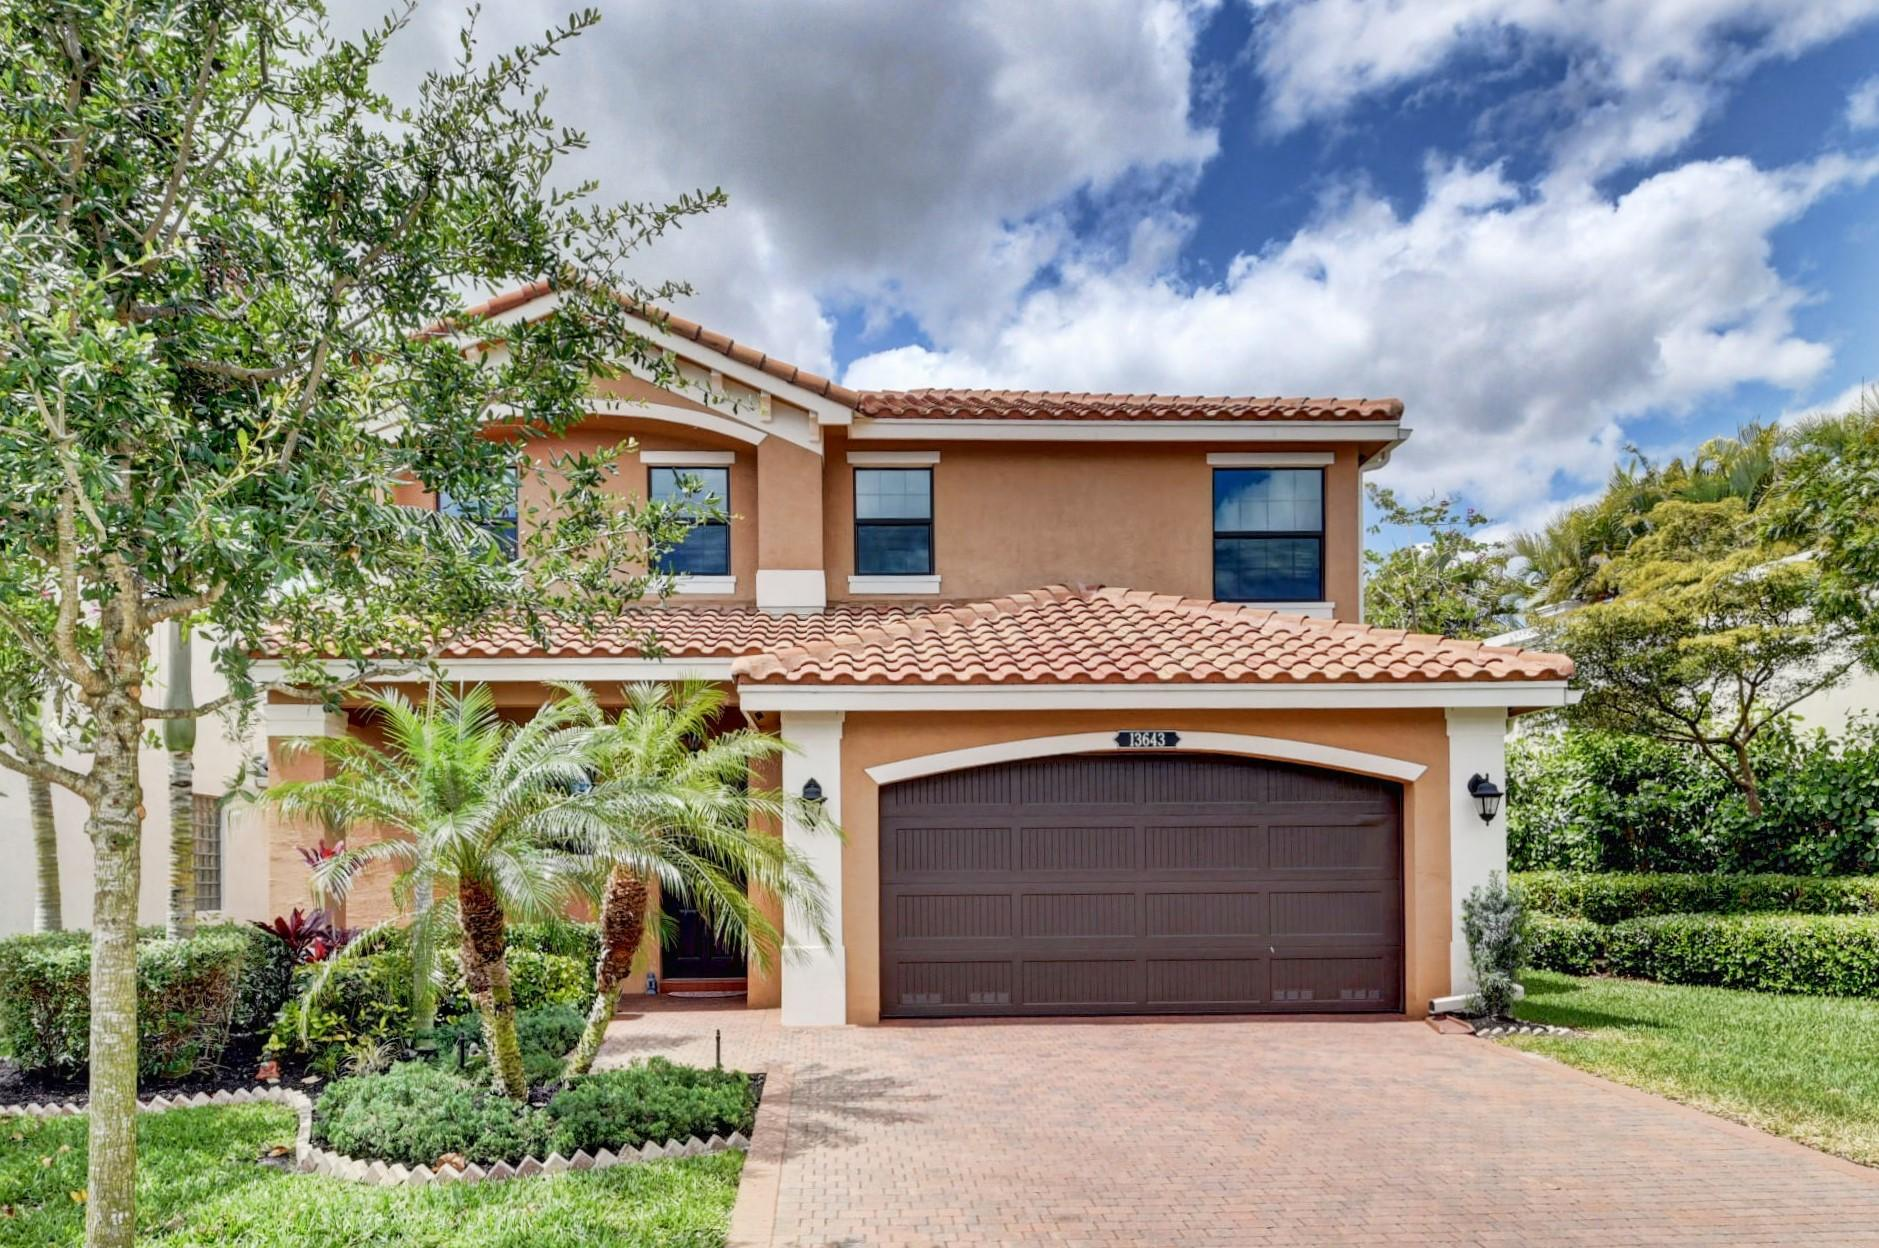 13643 Moss Agate Ave